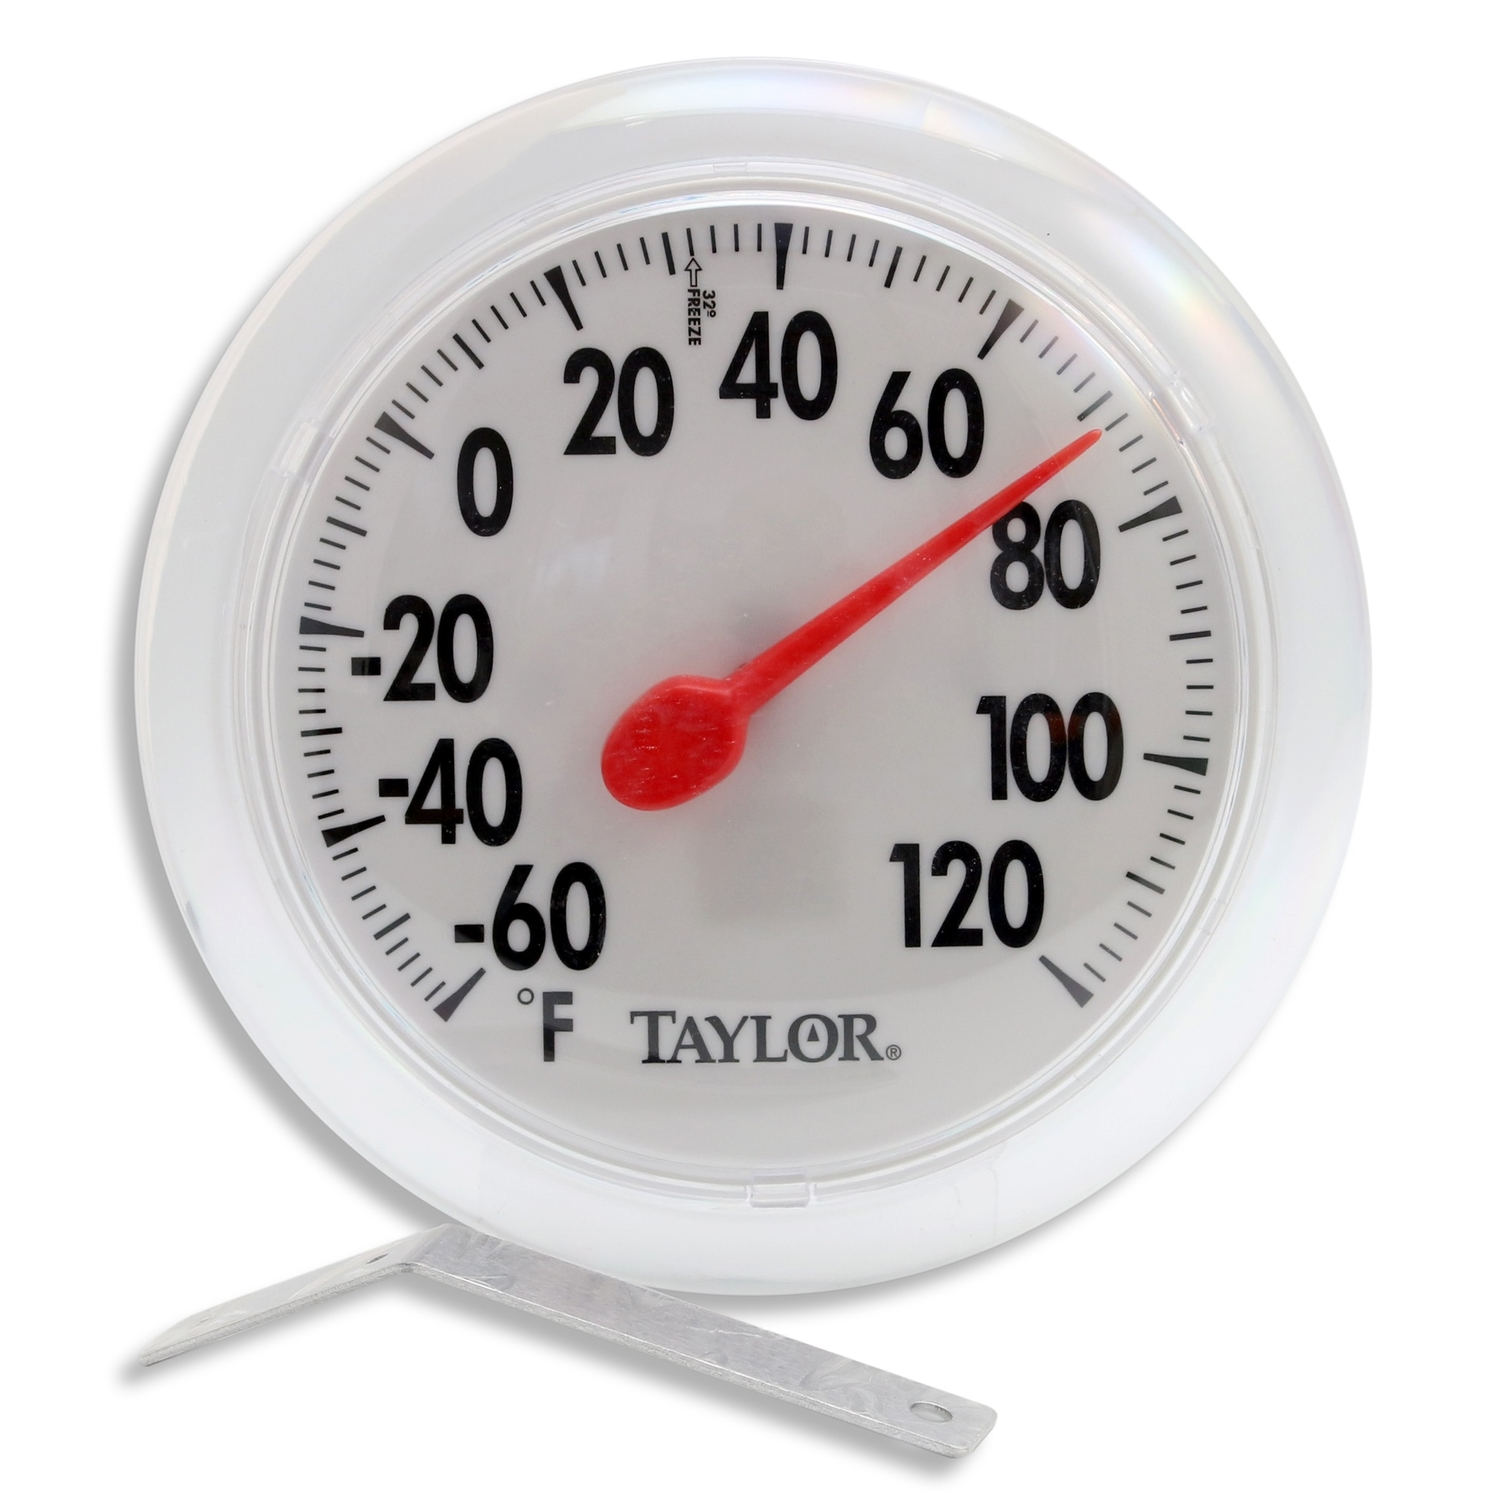 Taylor  Dial Thermometer  White  Plastic